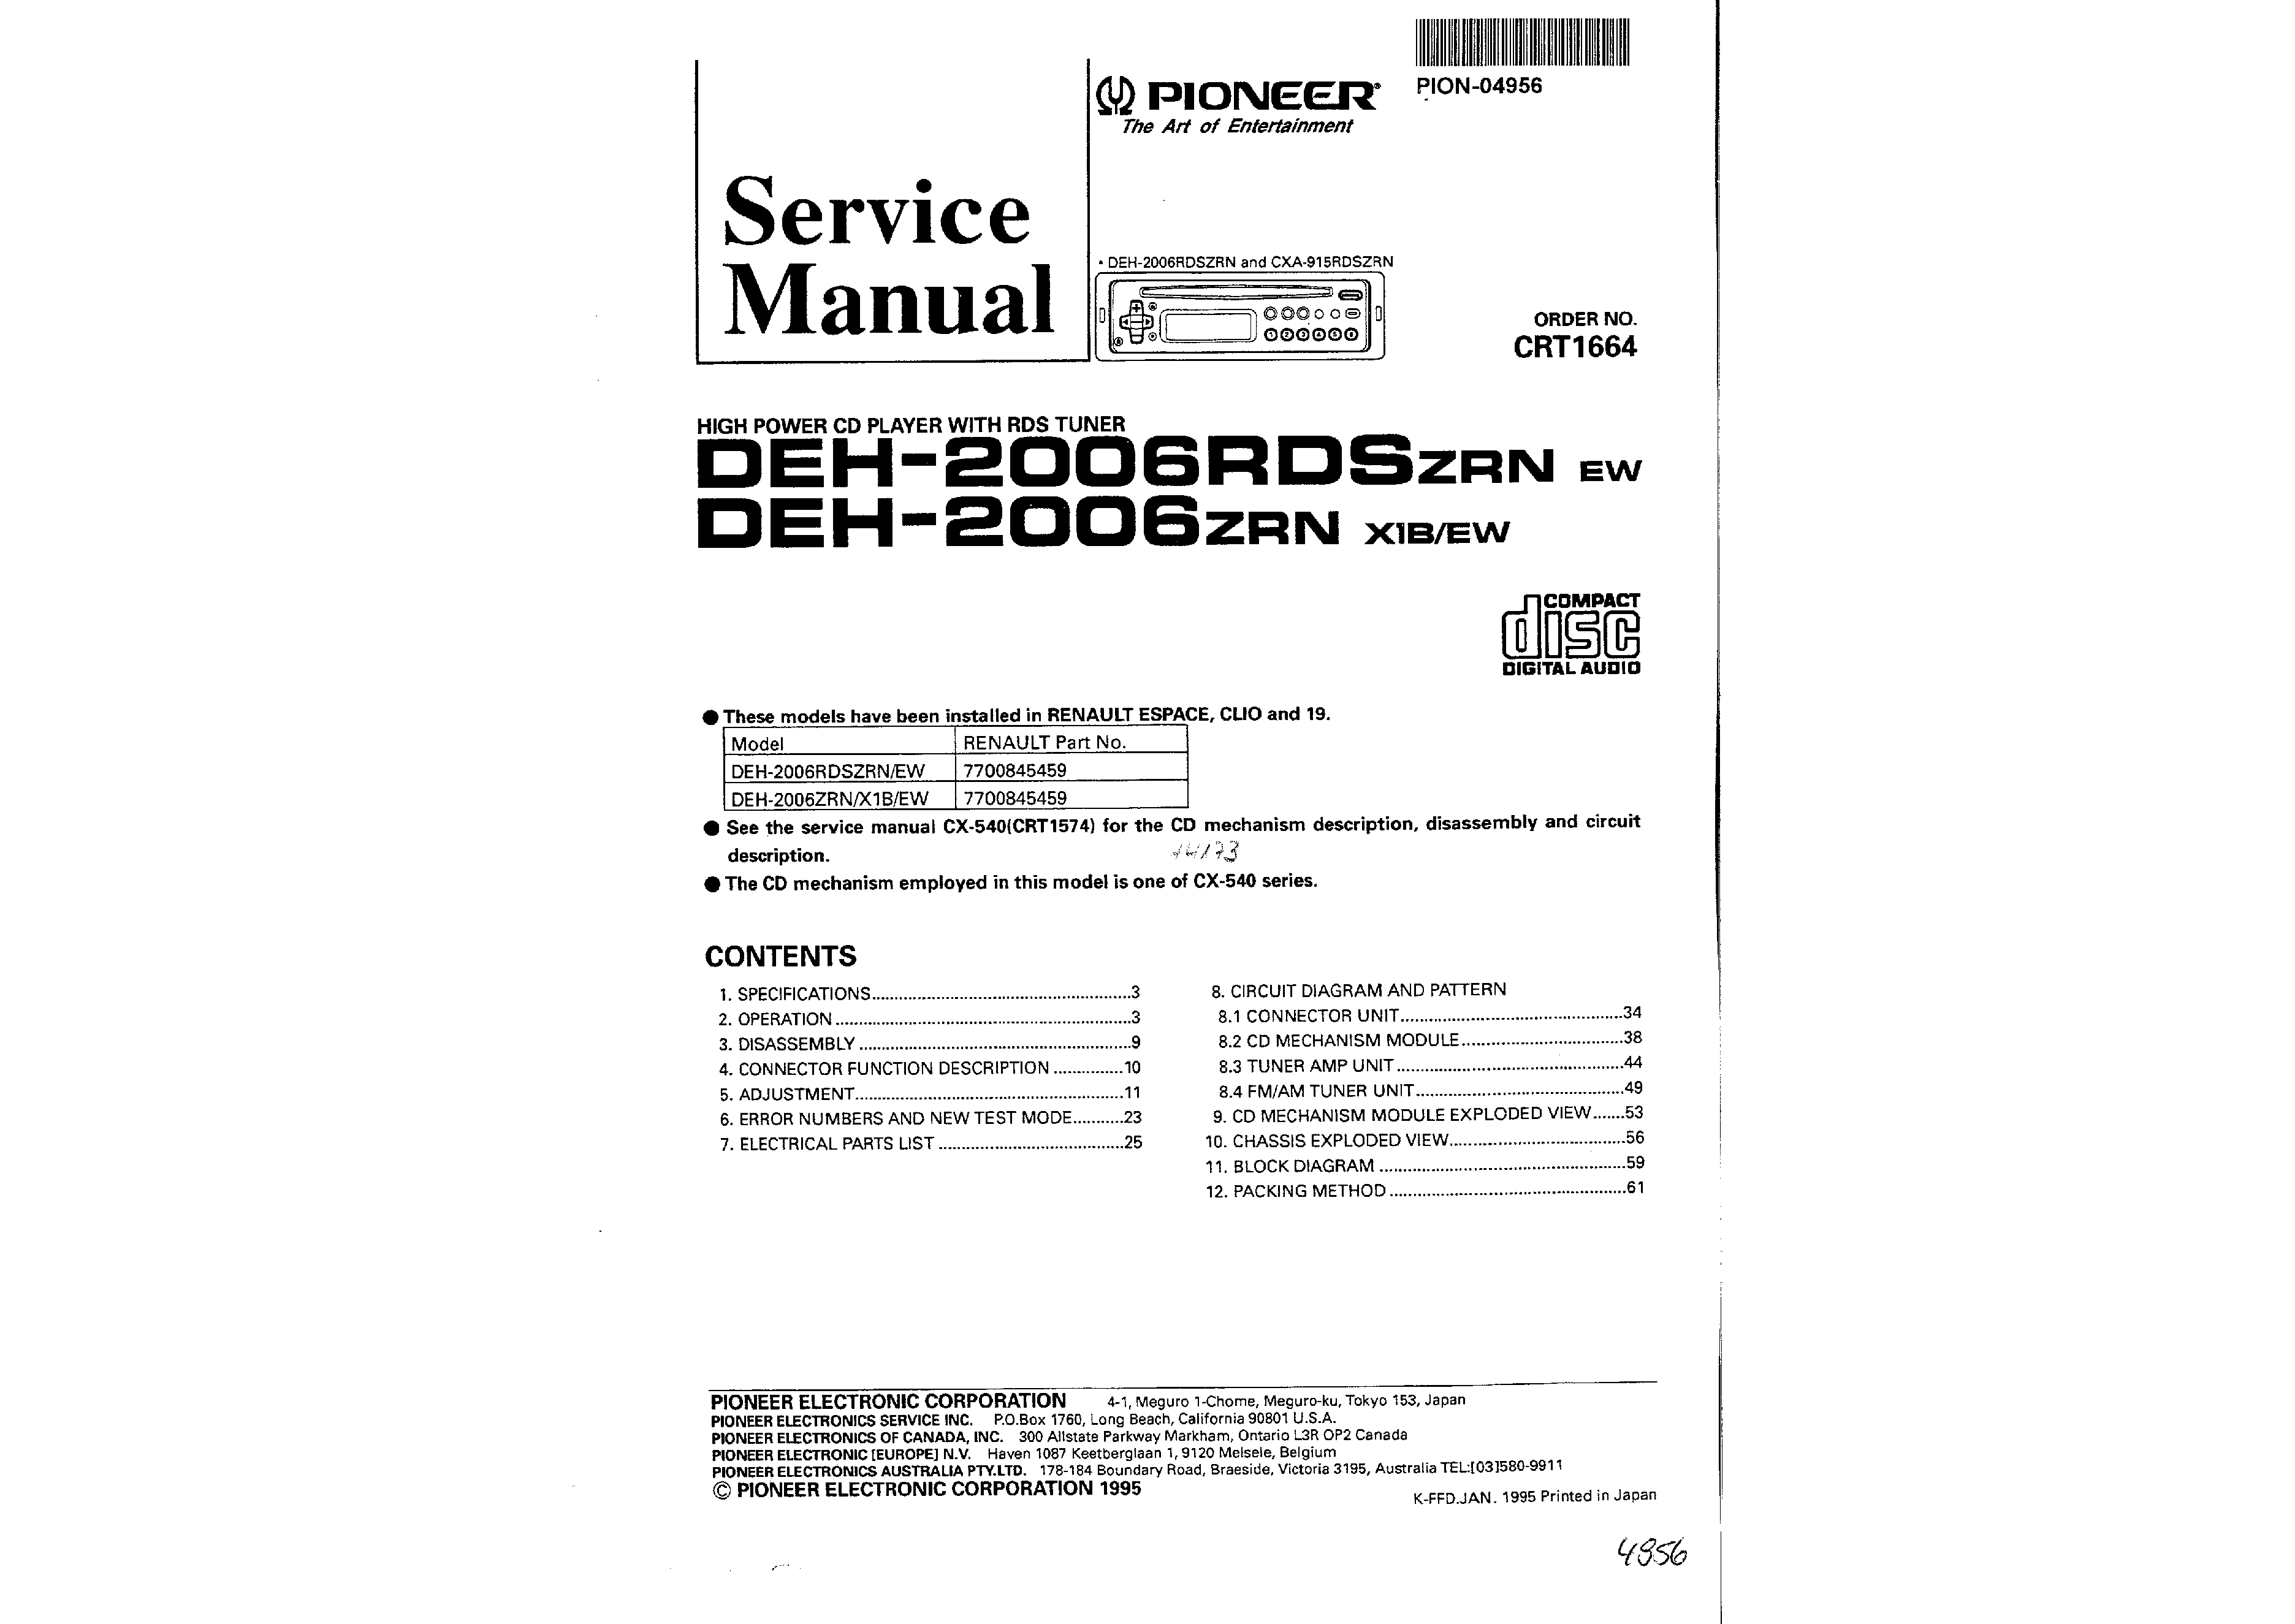 Pioneer Deh 2006rds Zrn Ew Service Manual Immediate Download 23 Wiring Diagram Background Image